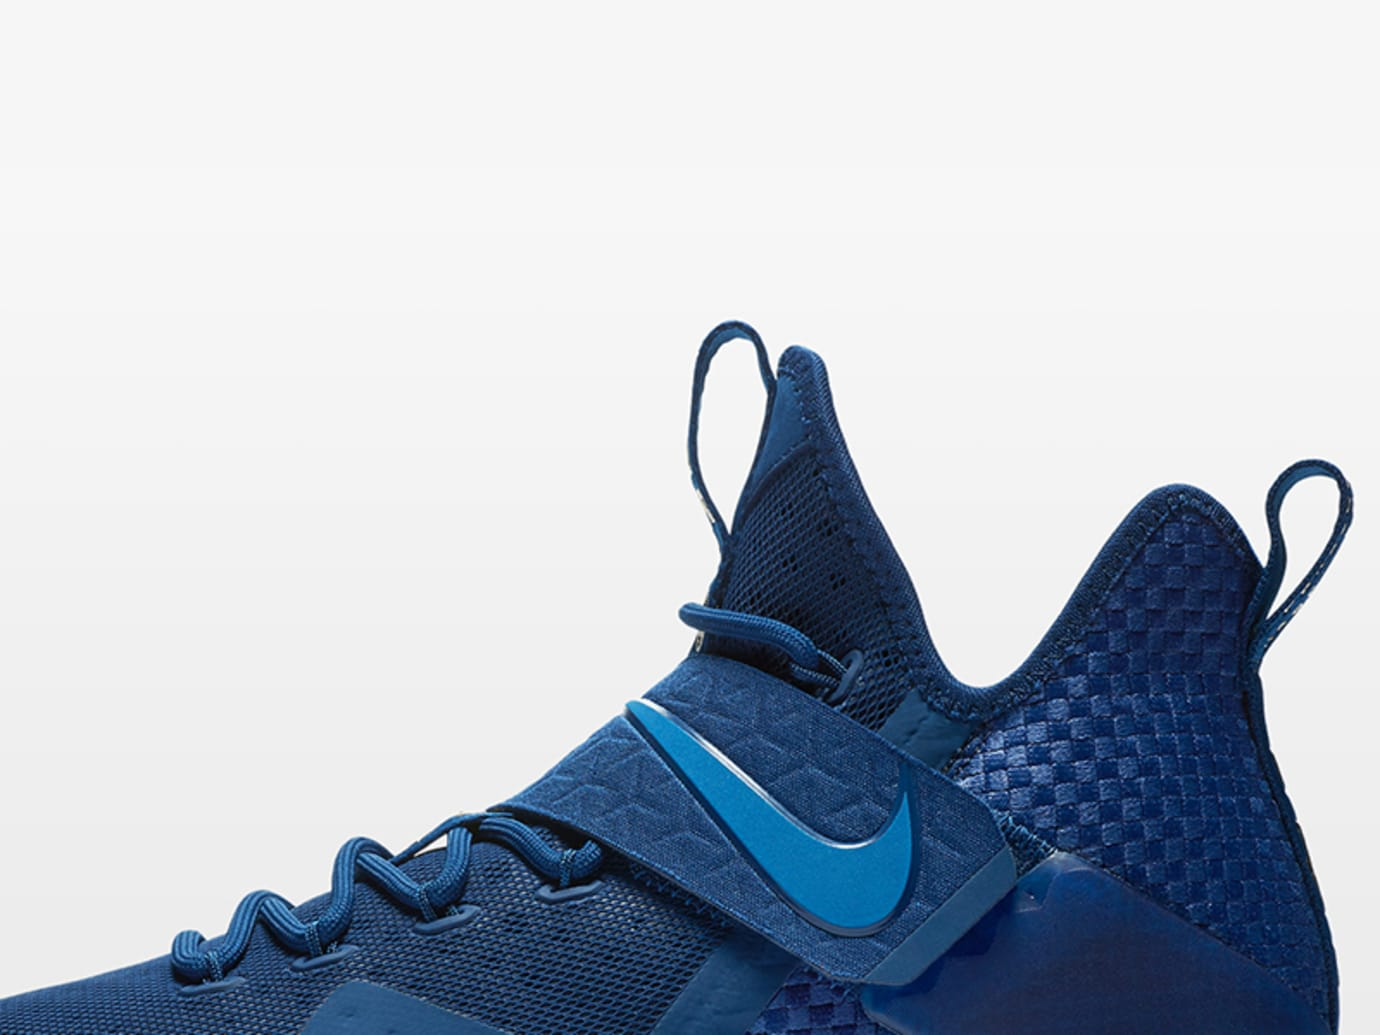 c483acf333775 Nike LeBron 14 Agimat Philippines Release Date